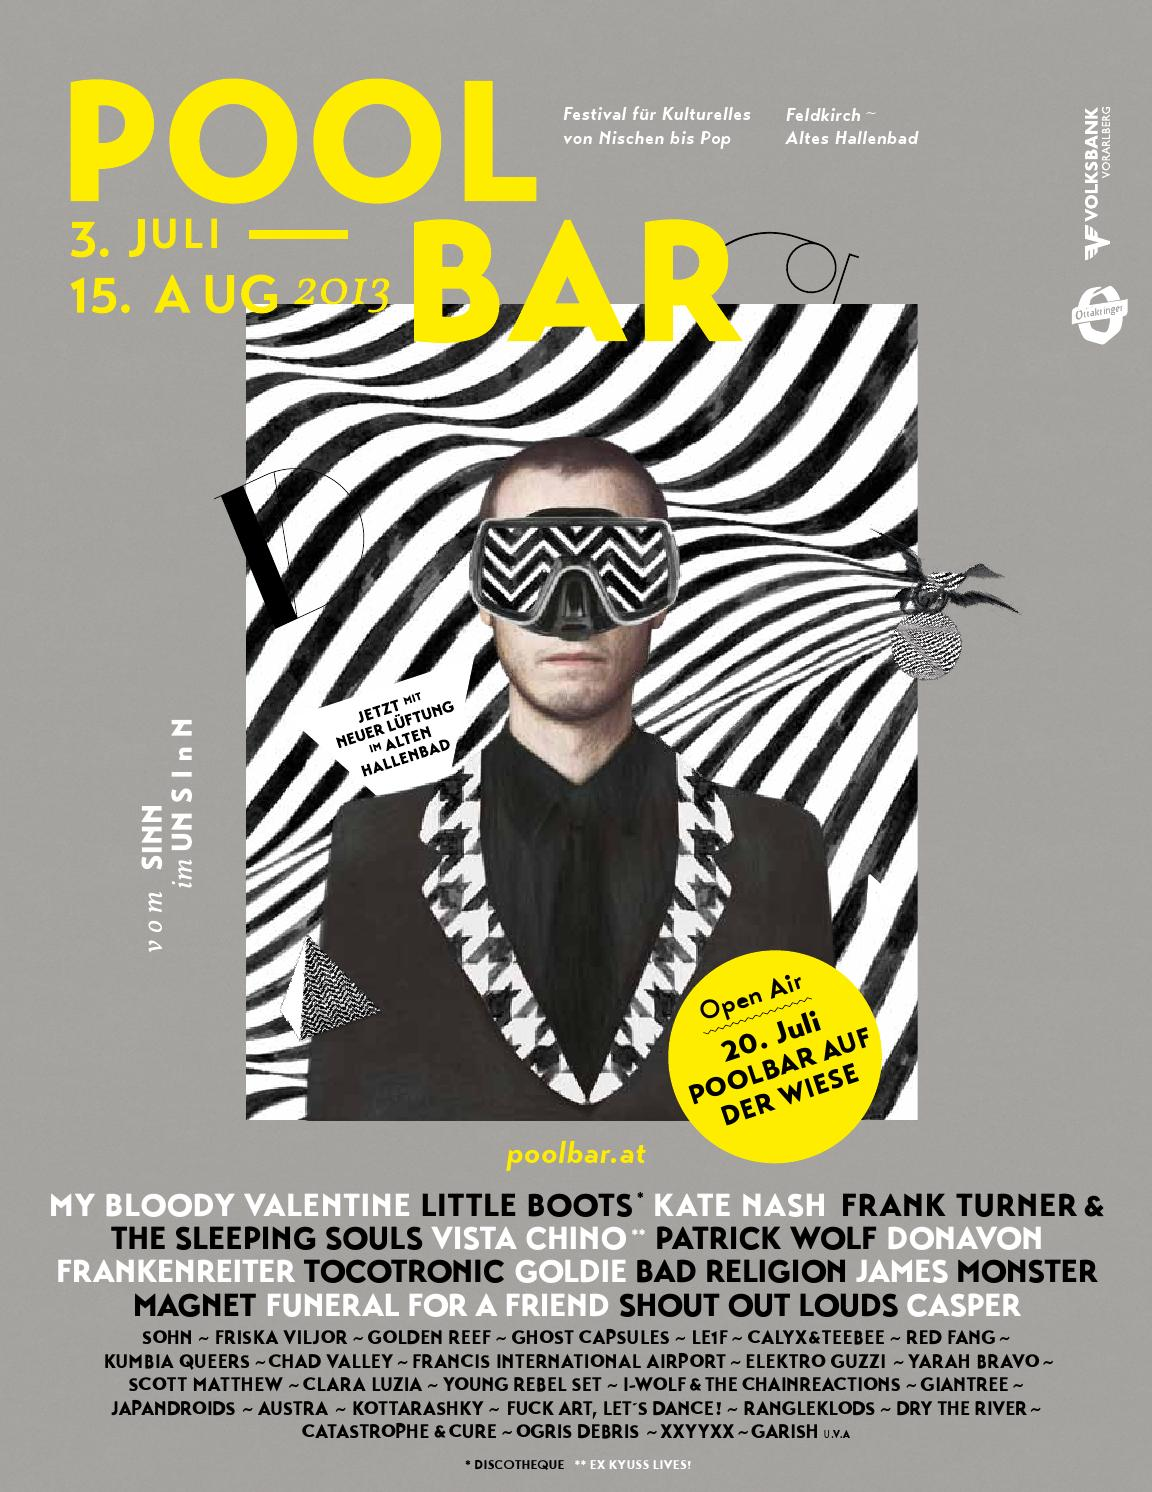 Poolbar Bigmag 2013 By Poolbar Kultur Ggmbh Issuu